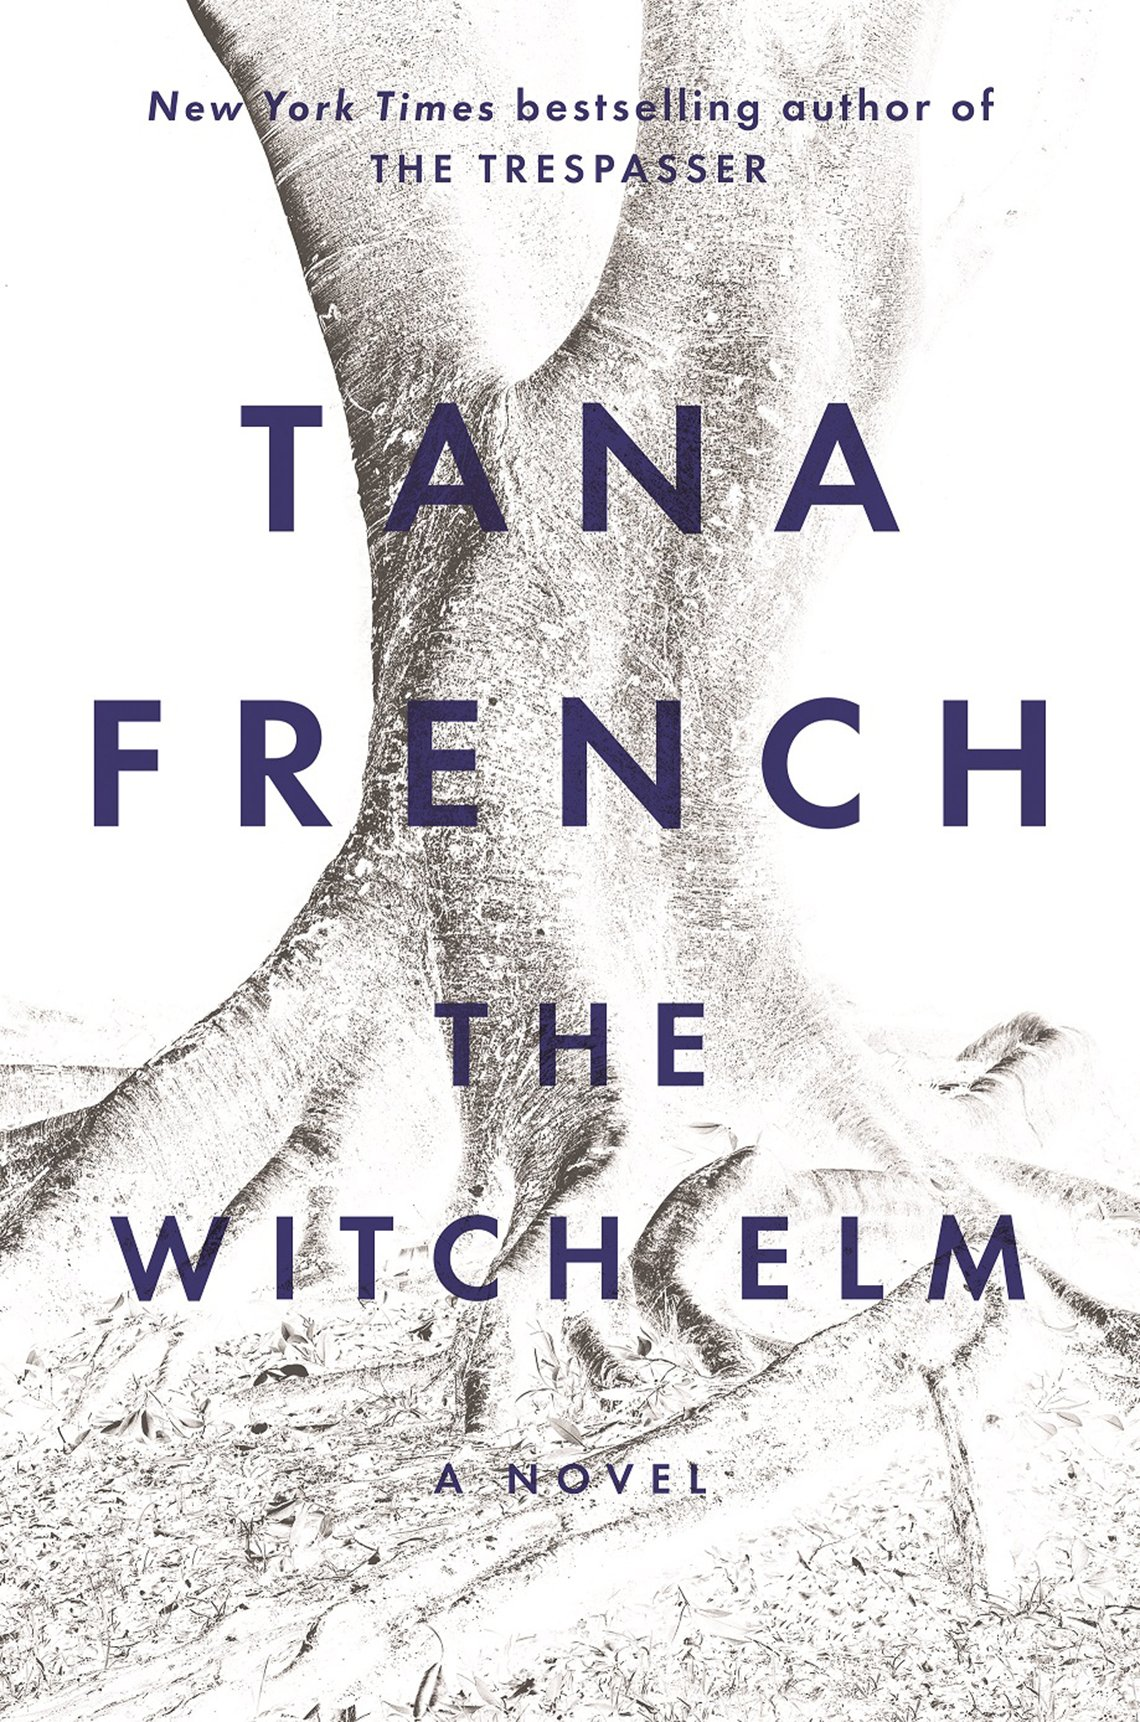 """Book cover reads """"New York Times bestselling author of The Trespasser, Tana French, The Witch Elm, a novel."""